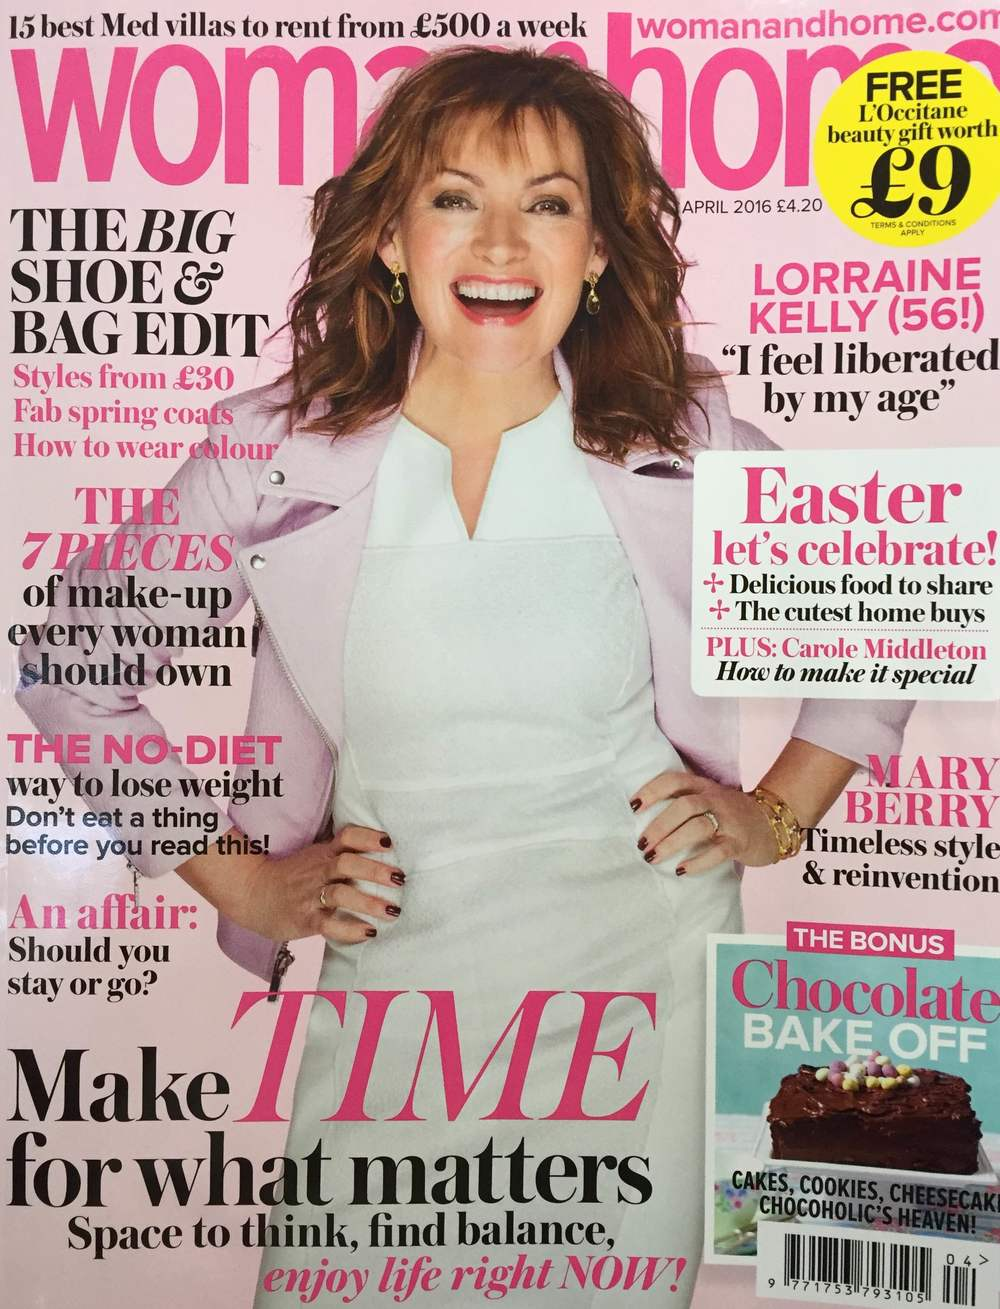 Woman and Home magazine Lorraine Kelly Cover UK April 2016